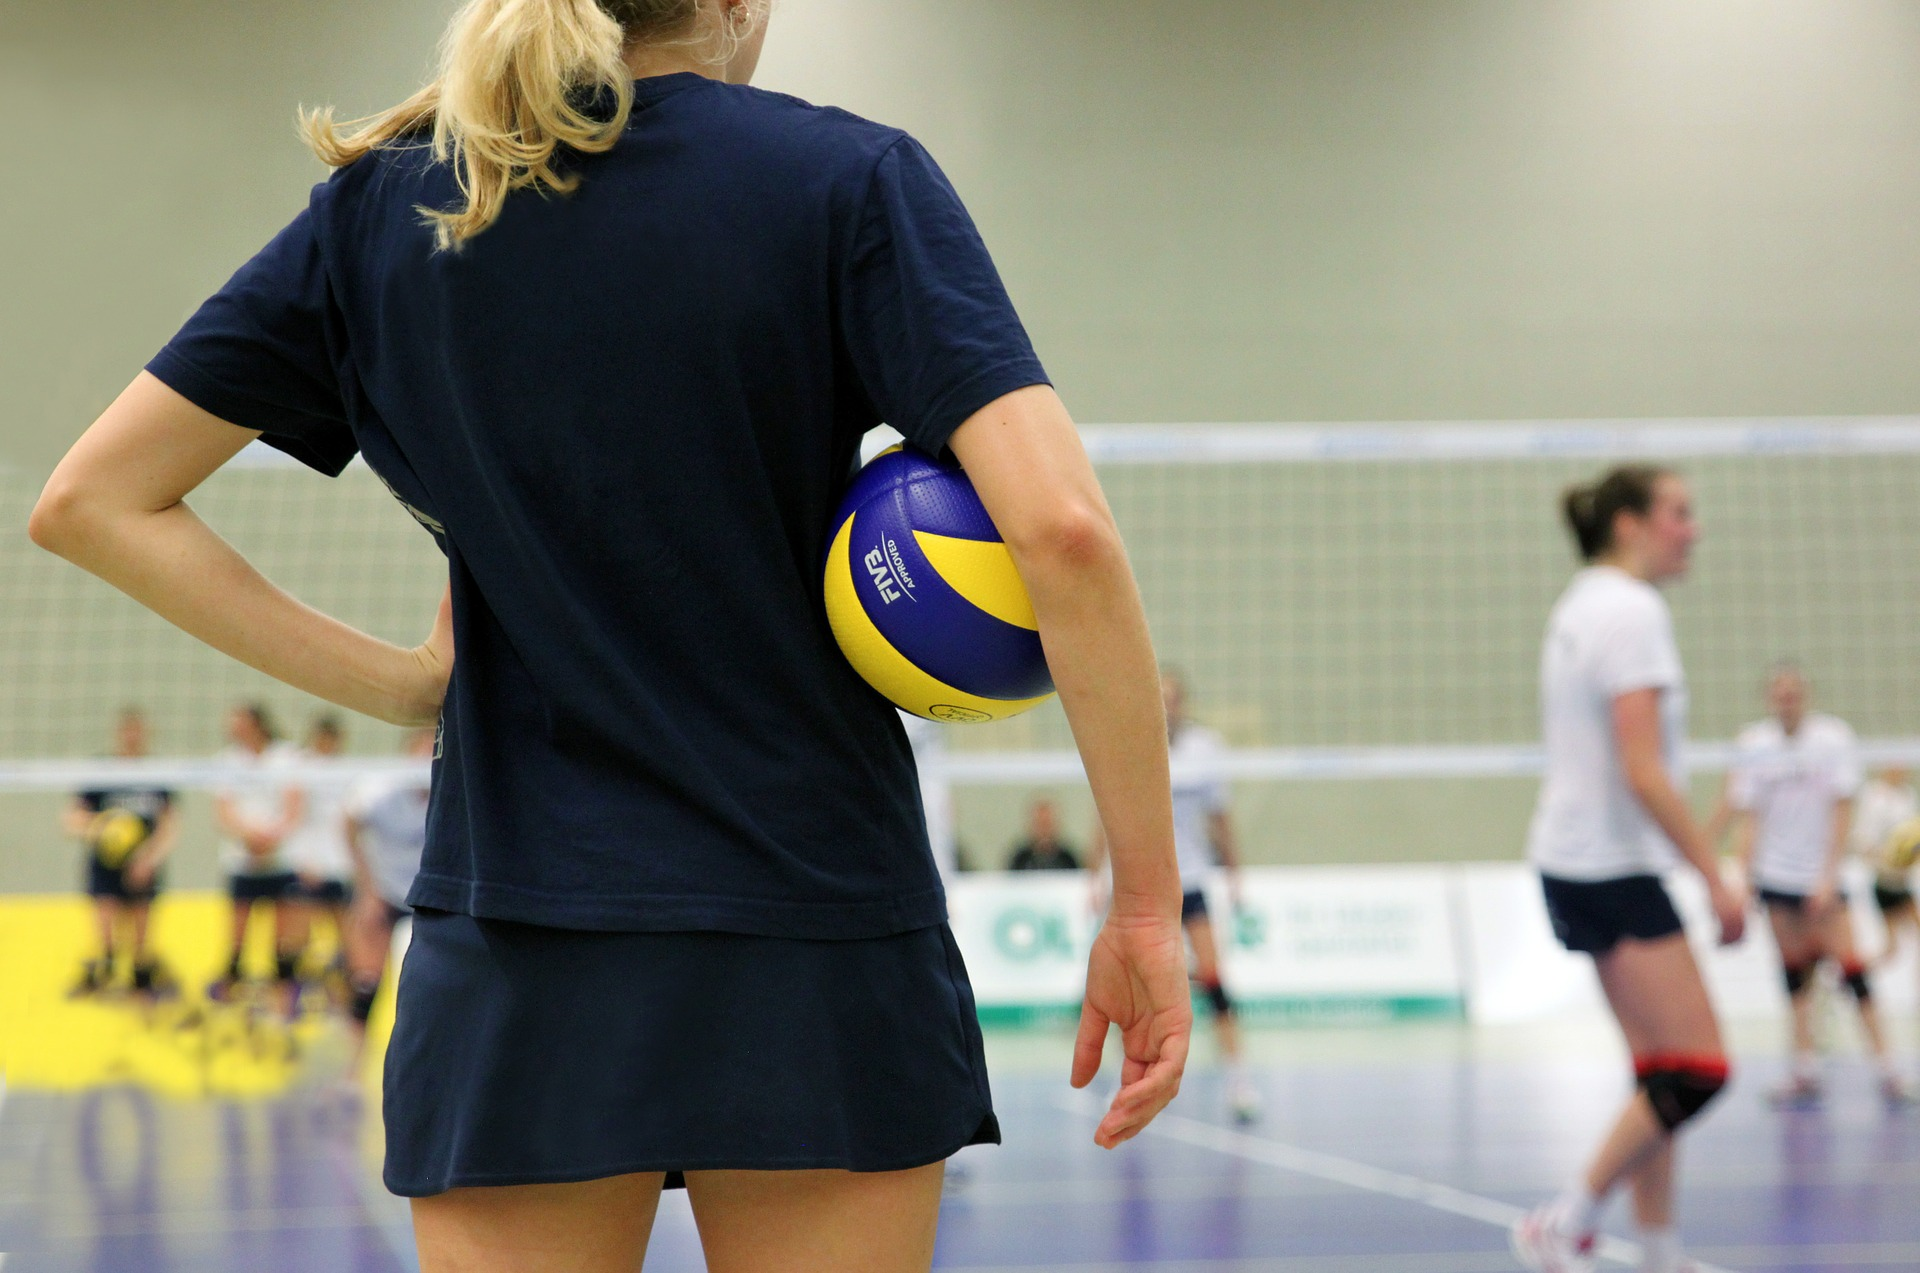 Girl wearing a black shirt holding a volleyball under her arm watching people play volleyball